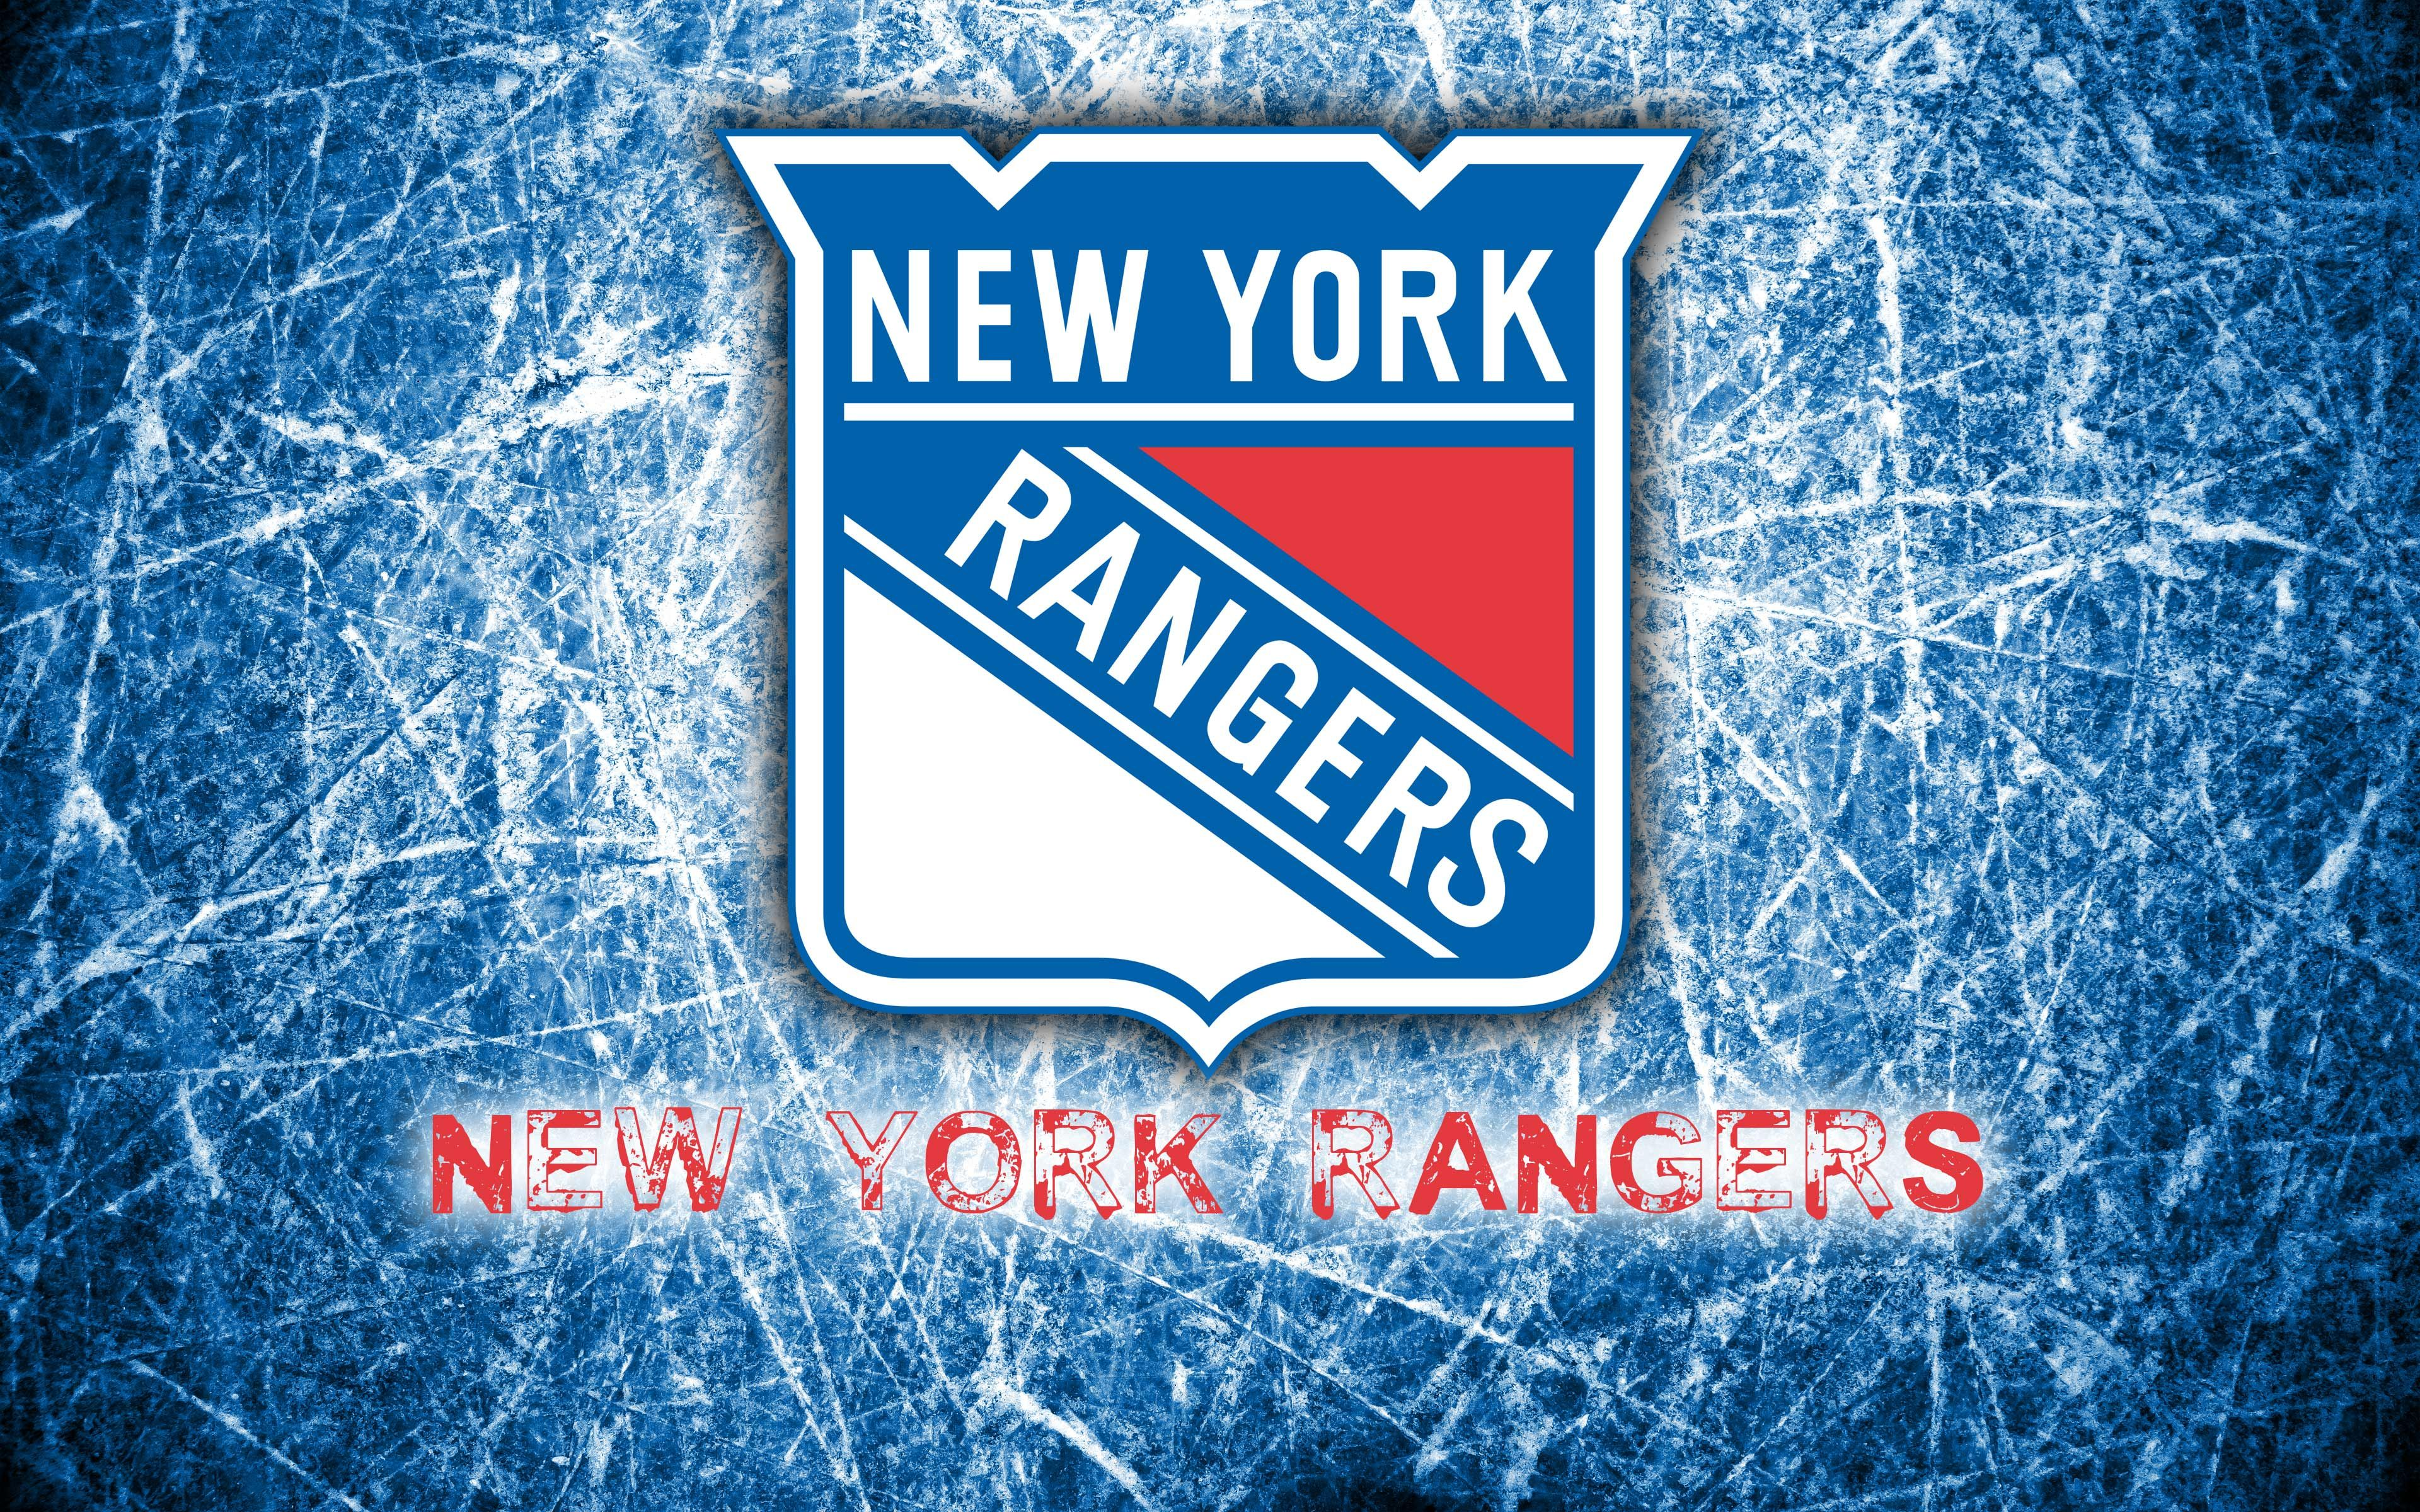 New York Rangers Wallpaper Collection For Free Download